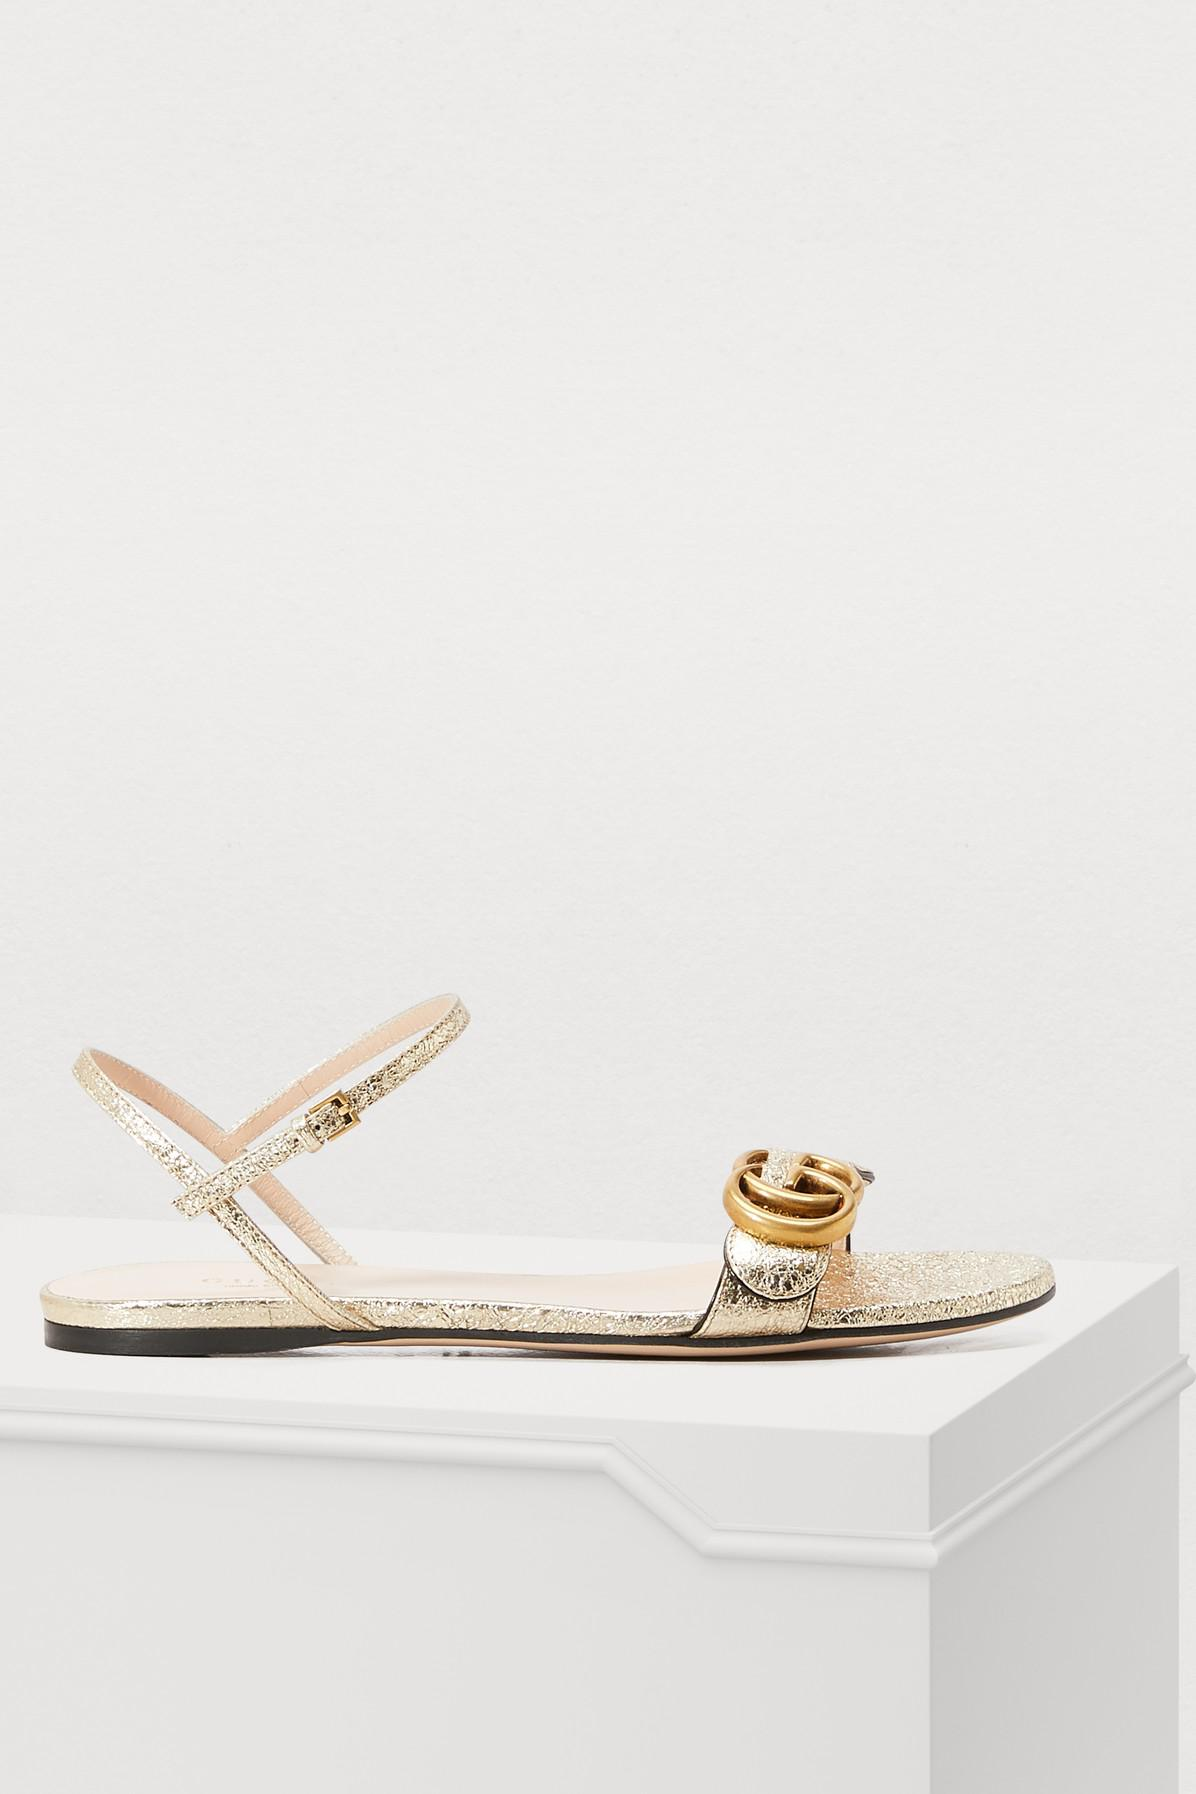 85e378c7bd309 Gucci GG Marmont Sandals in Metallic - Lyst